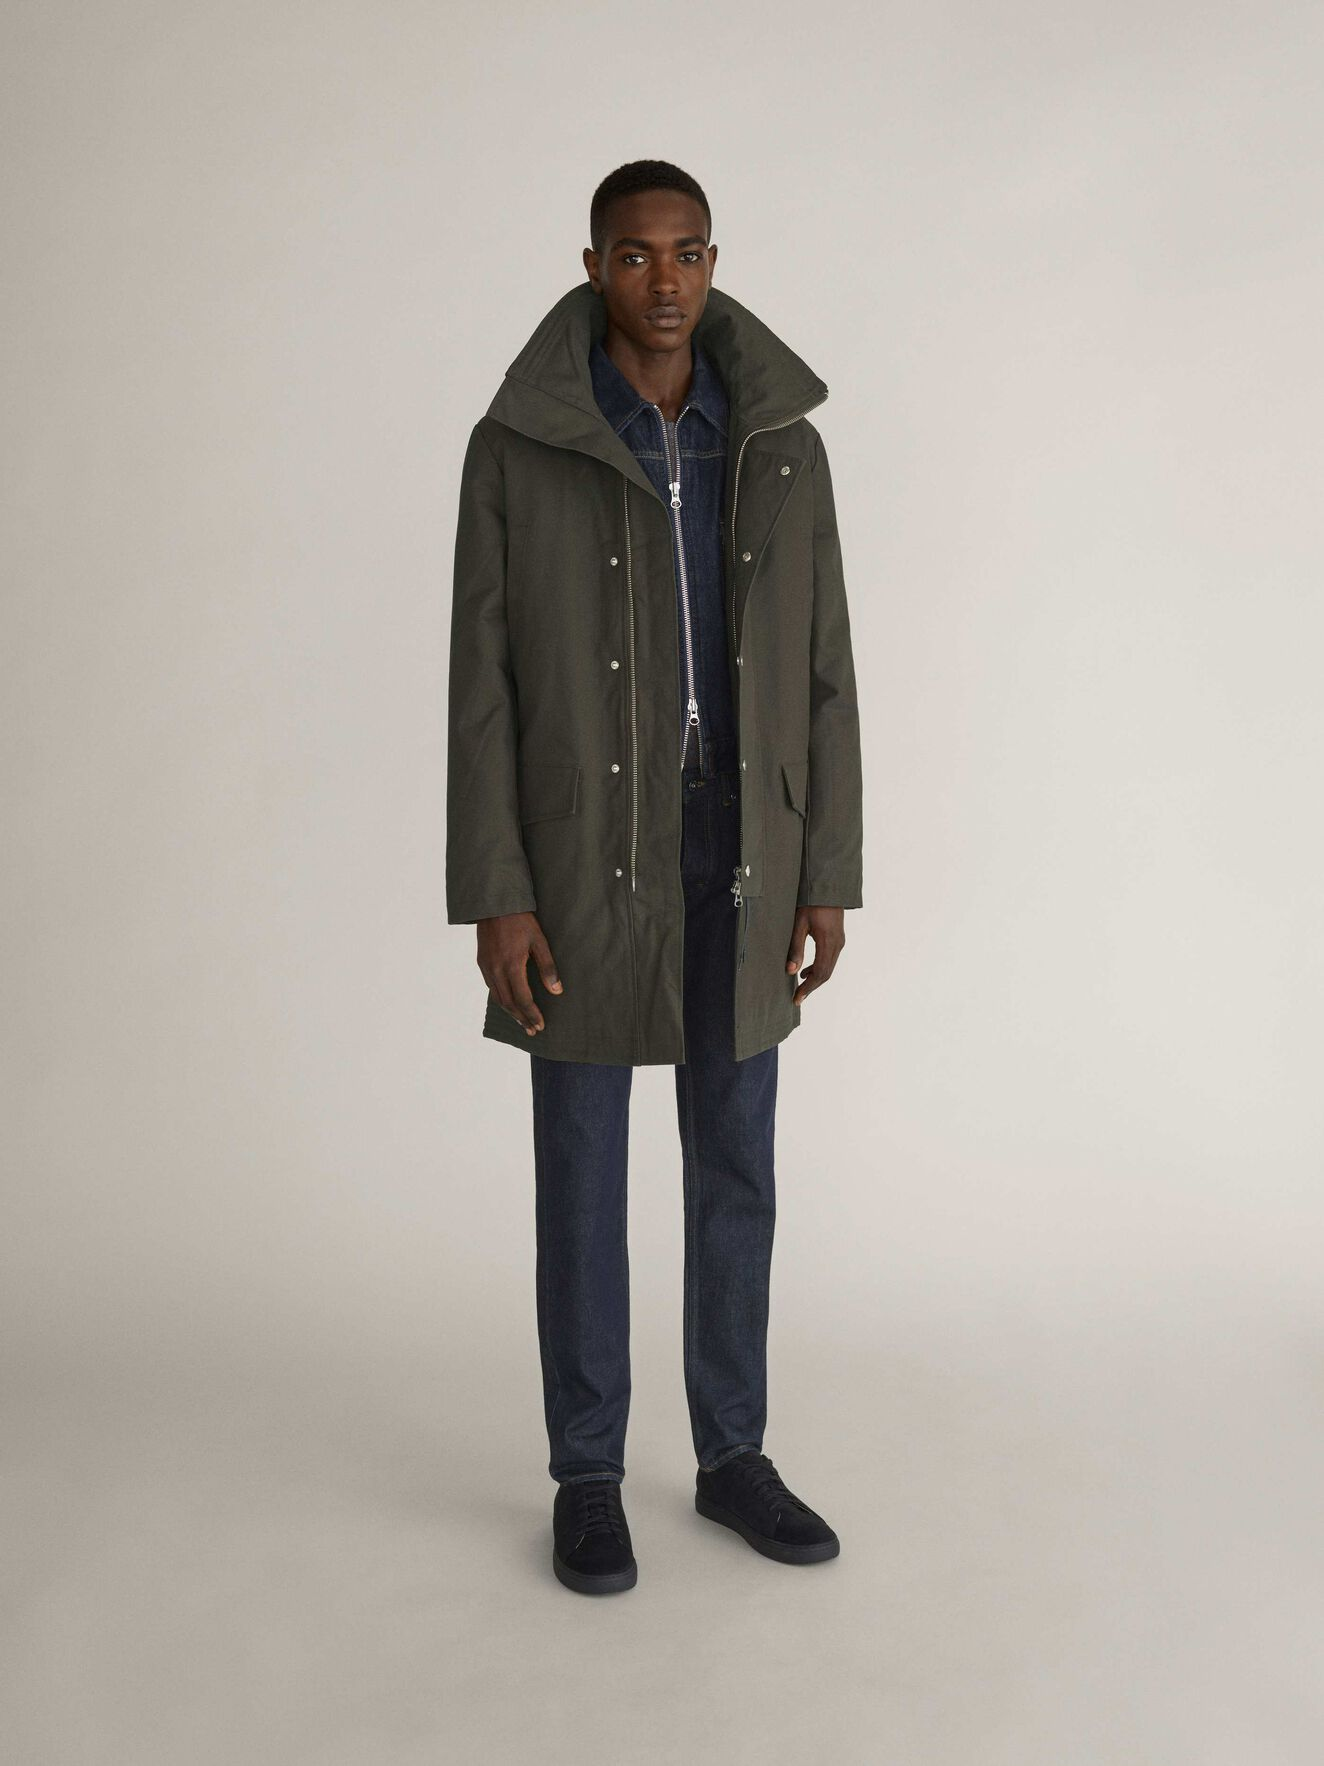 Contract Parka in Black Olive from Tiger of Sweden